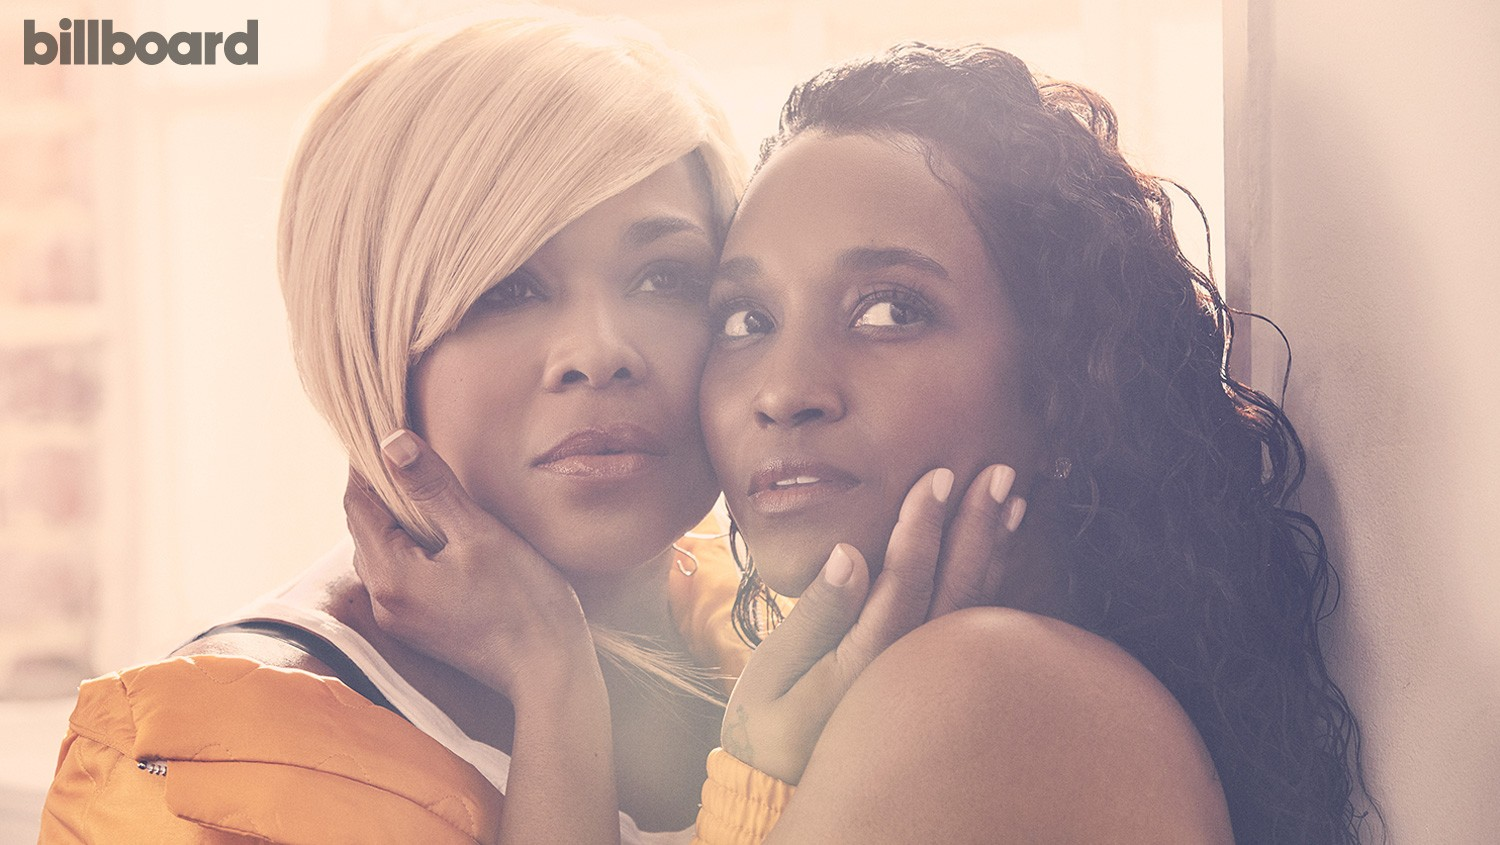 """""""With her sound and my sound, it becomes a TLC record,"""" says Watkins (left) of singing with Thomas. """"We fit in any genre. Even country artists come up to me like, 'I love 'No Scrubs'!"""""""